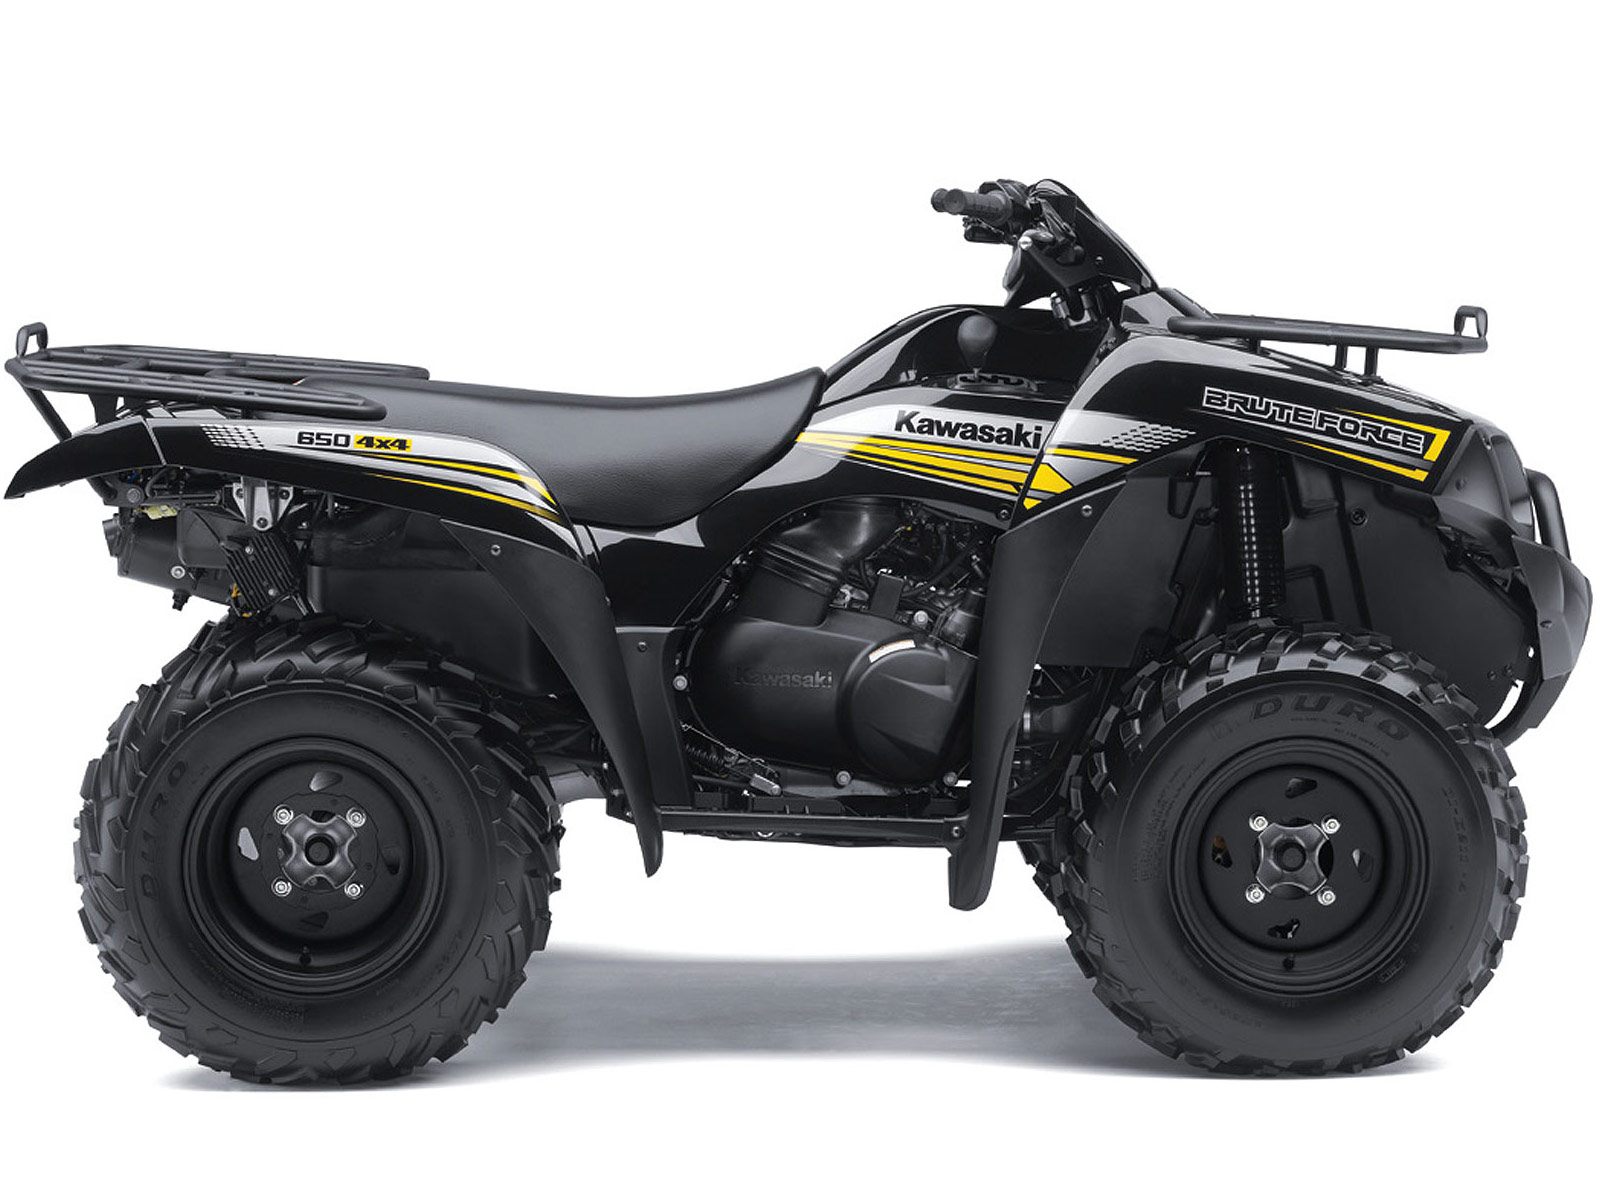 2013 kawasaki brute force 650 4x4 atv pictures and. Black Bedroom Furniture Sets. Home Design Ideas